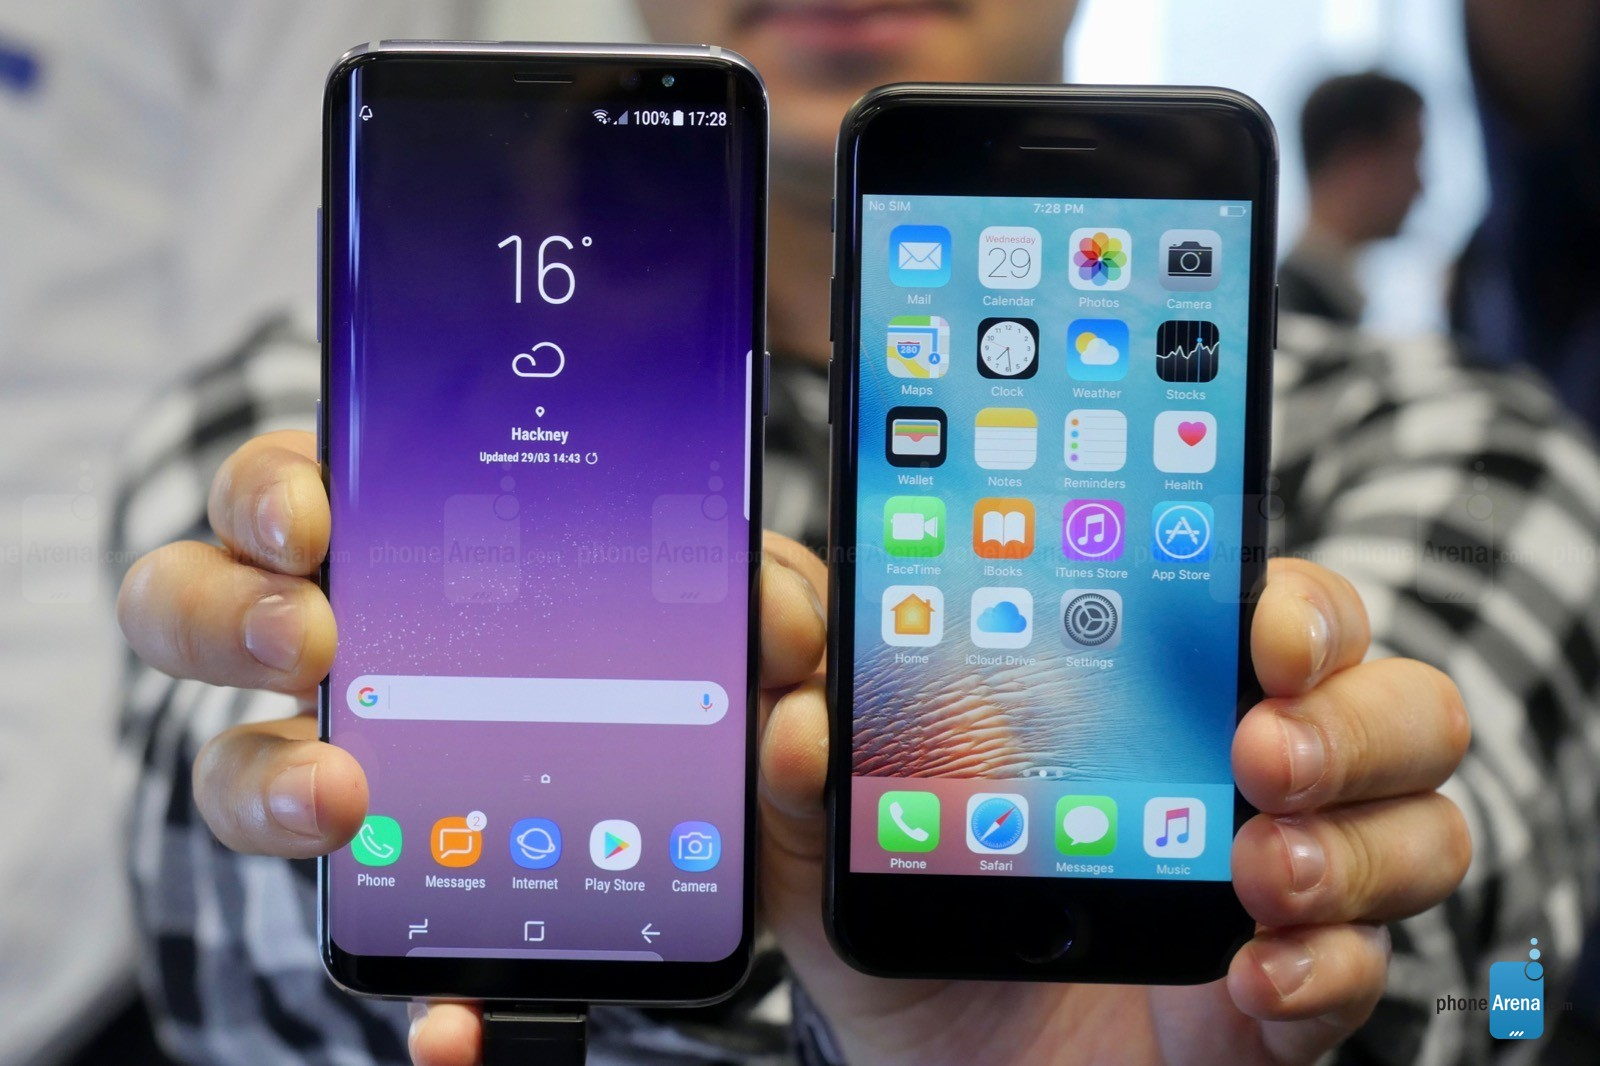 samsung-galaxy-s8-vs-apple-iphone-7-comparison—11